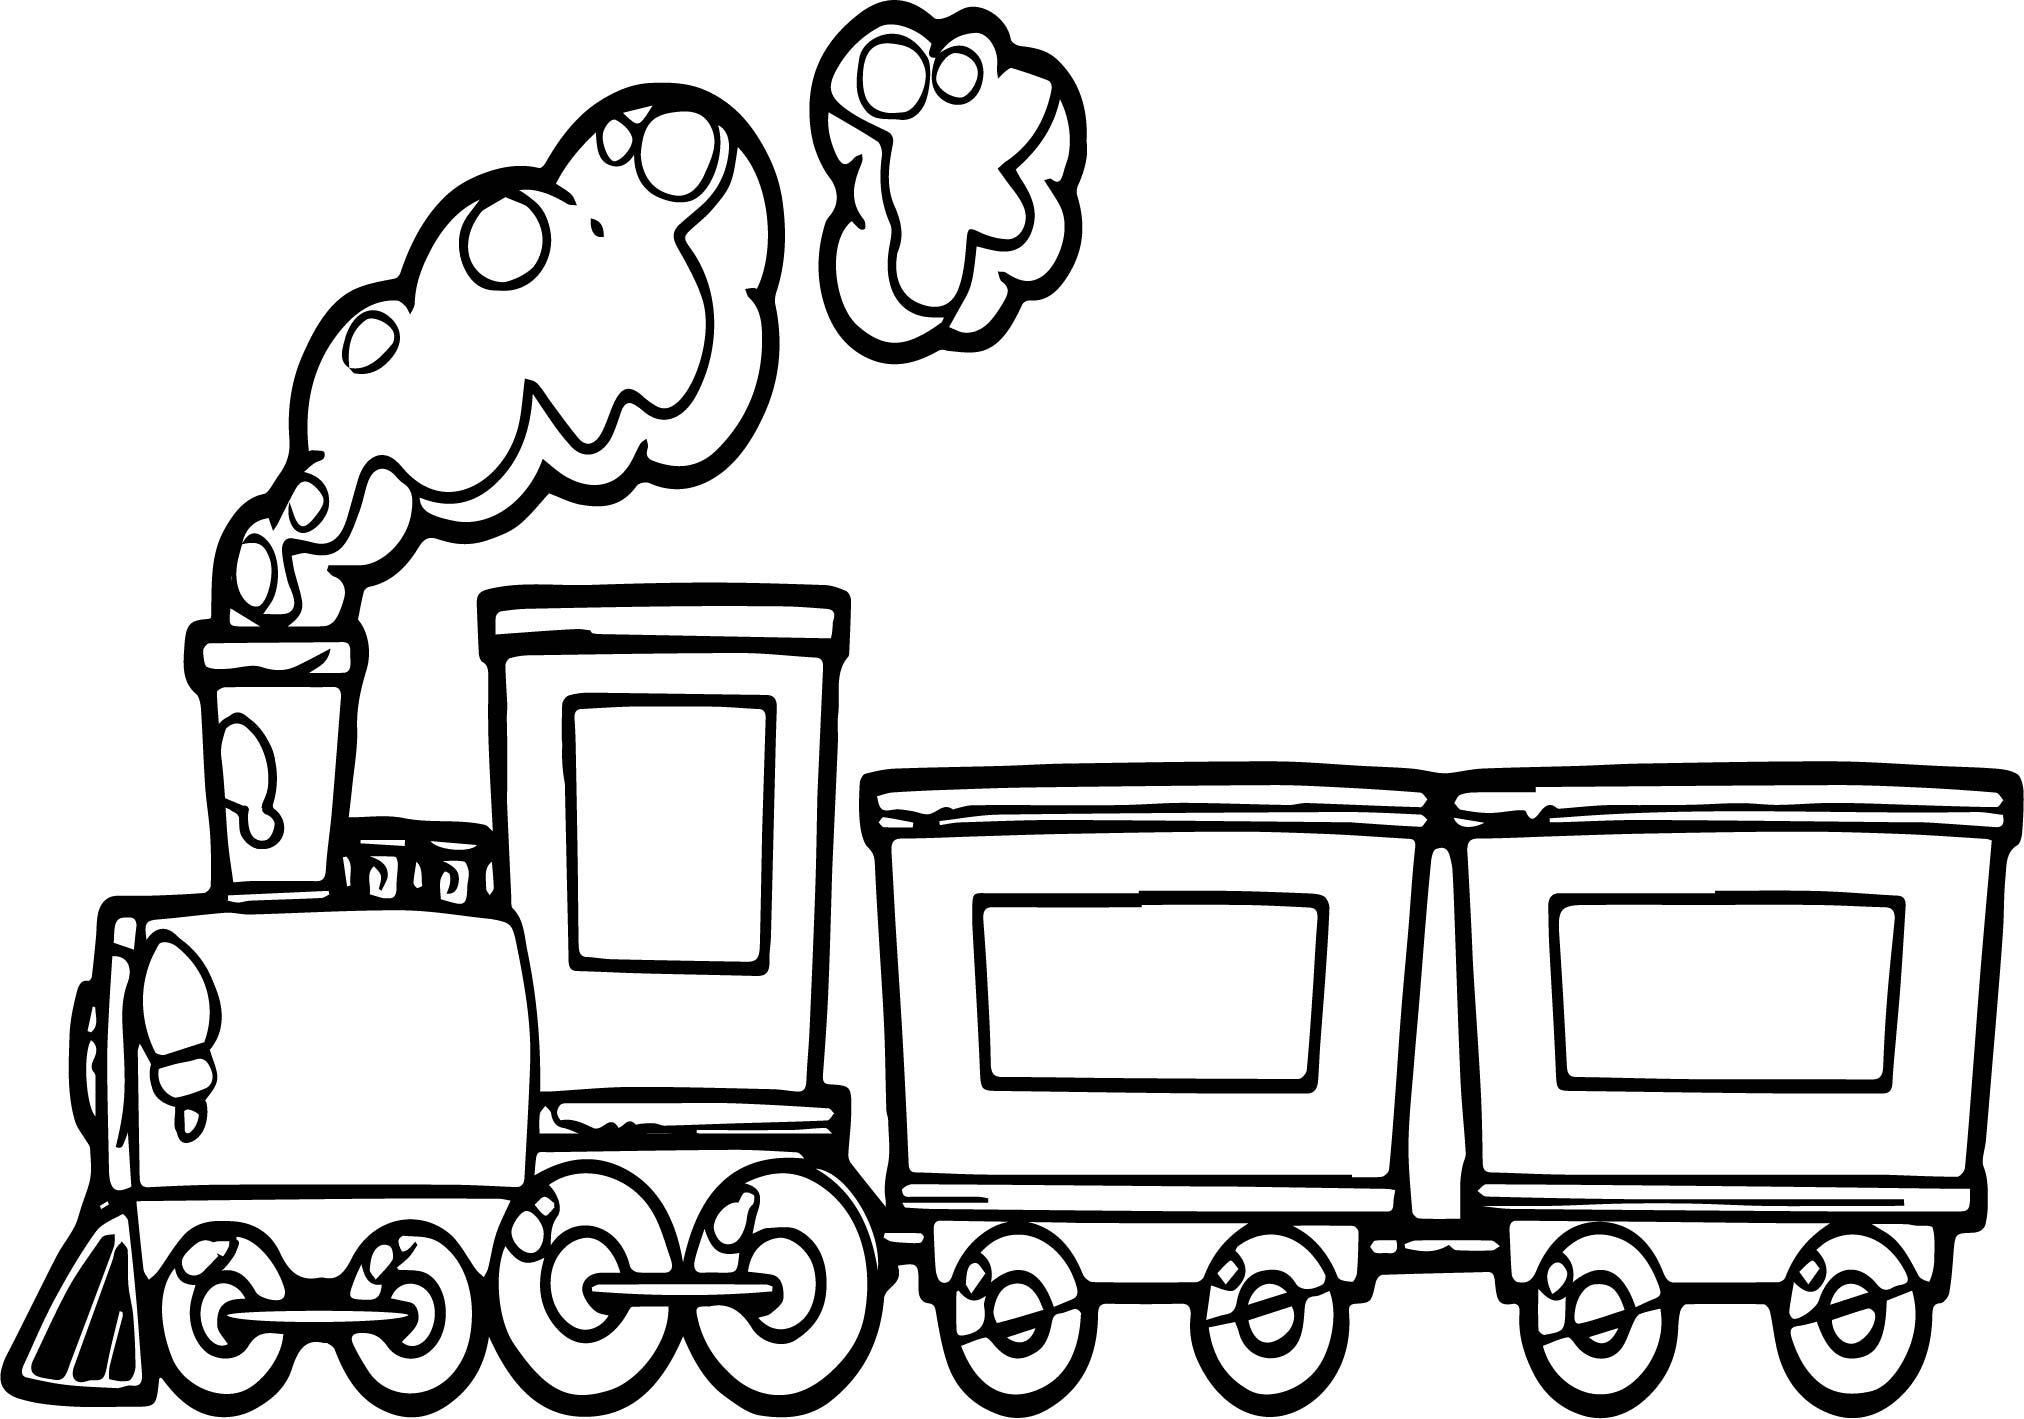 Free Printable Train Coloring Pages For Kids Train Coloring Pages Train Drawing Coloring Pages